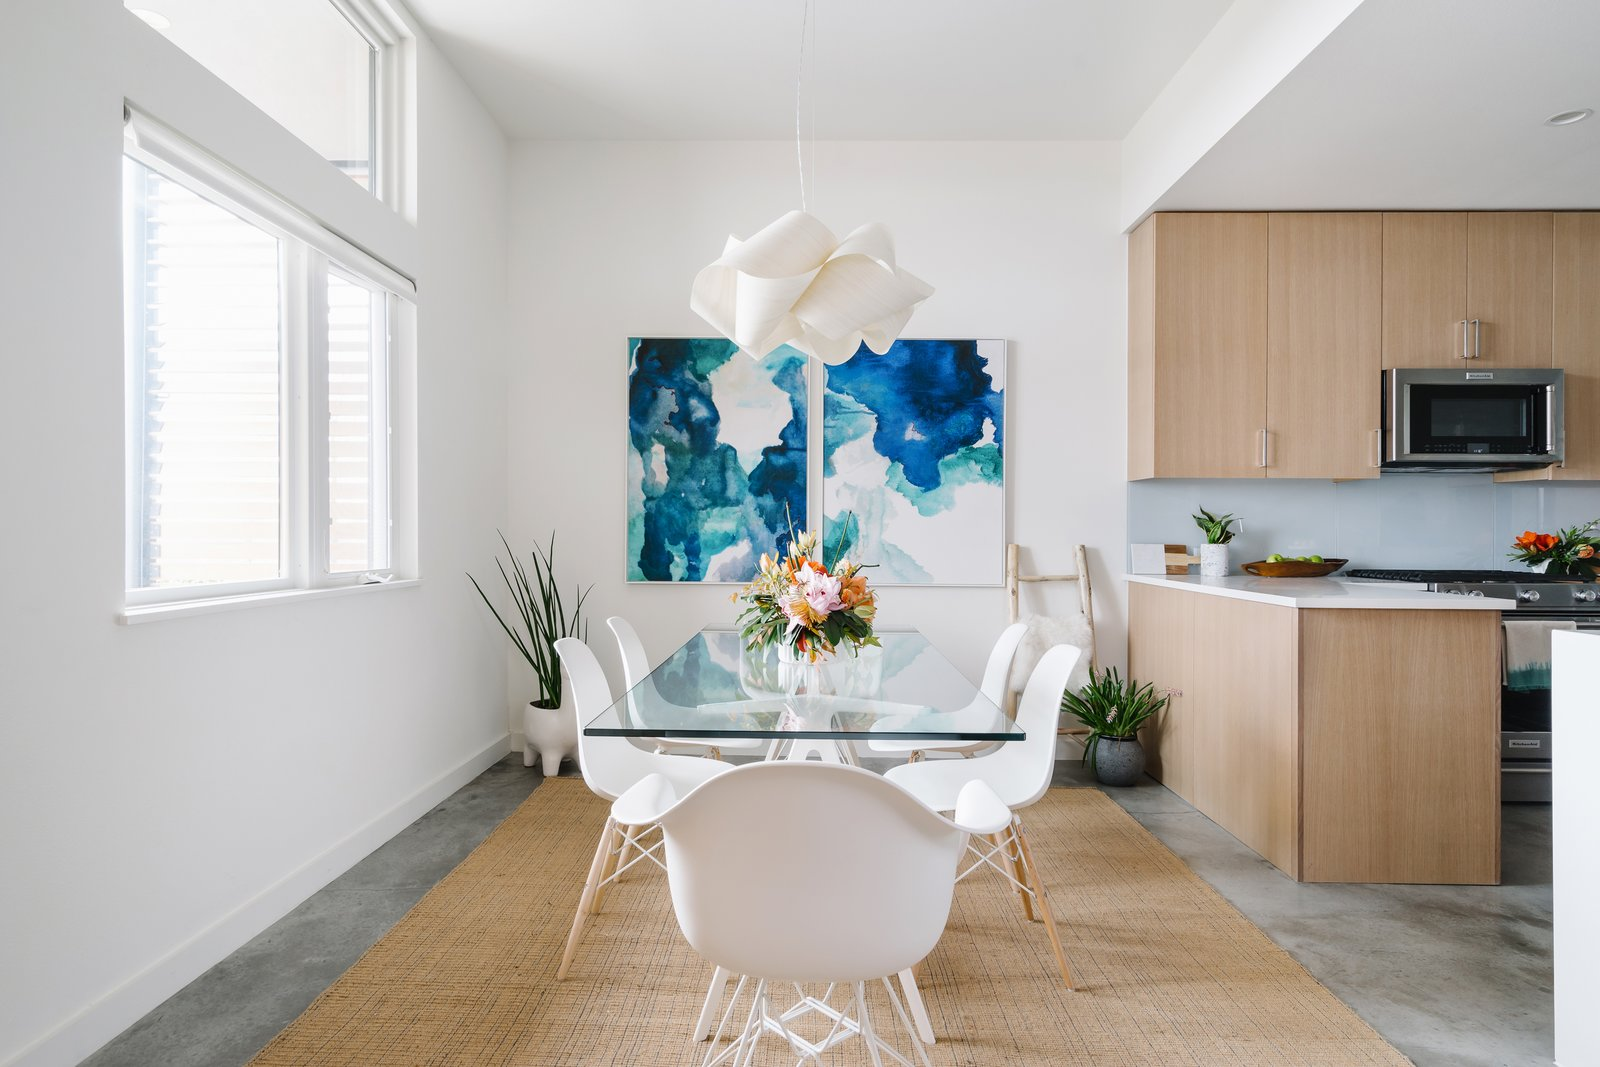 The dining room is outfitted with a pair of striking paintings by Vivian Caits. Tagged: Dining Room, Table, Pendant Lighting, and Concrete Floor.  Photo 2 of 7 in St. Barts-Inspired Accents Create Modern Tranquility in an Austin Tilley Row Home